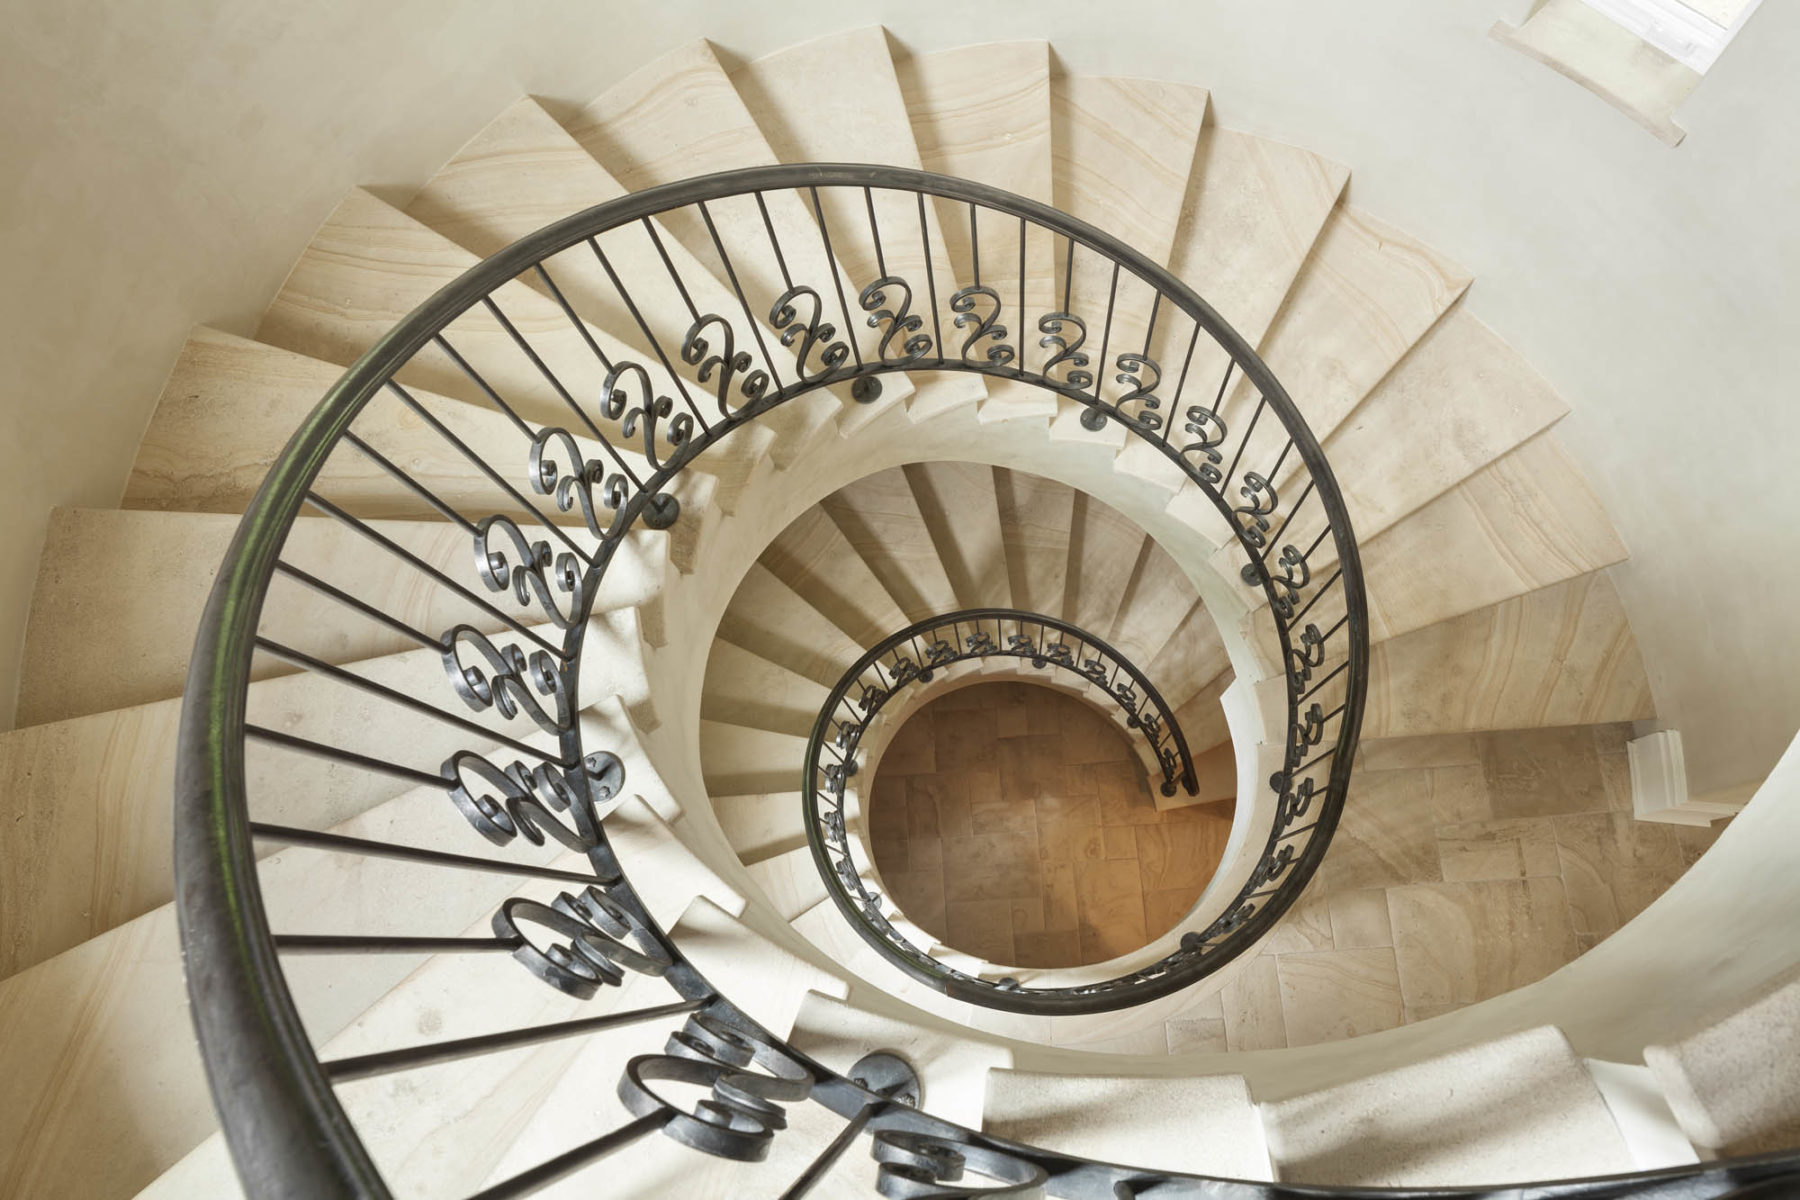 Dramatic spiral staircase made of wrought iron and limestone in this Harrison Design rustic estate home